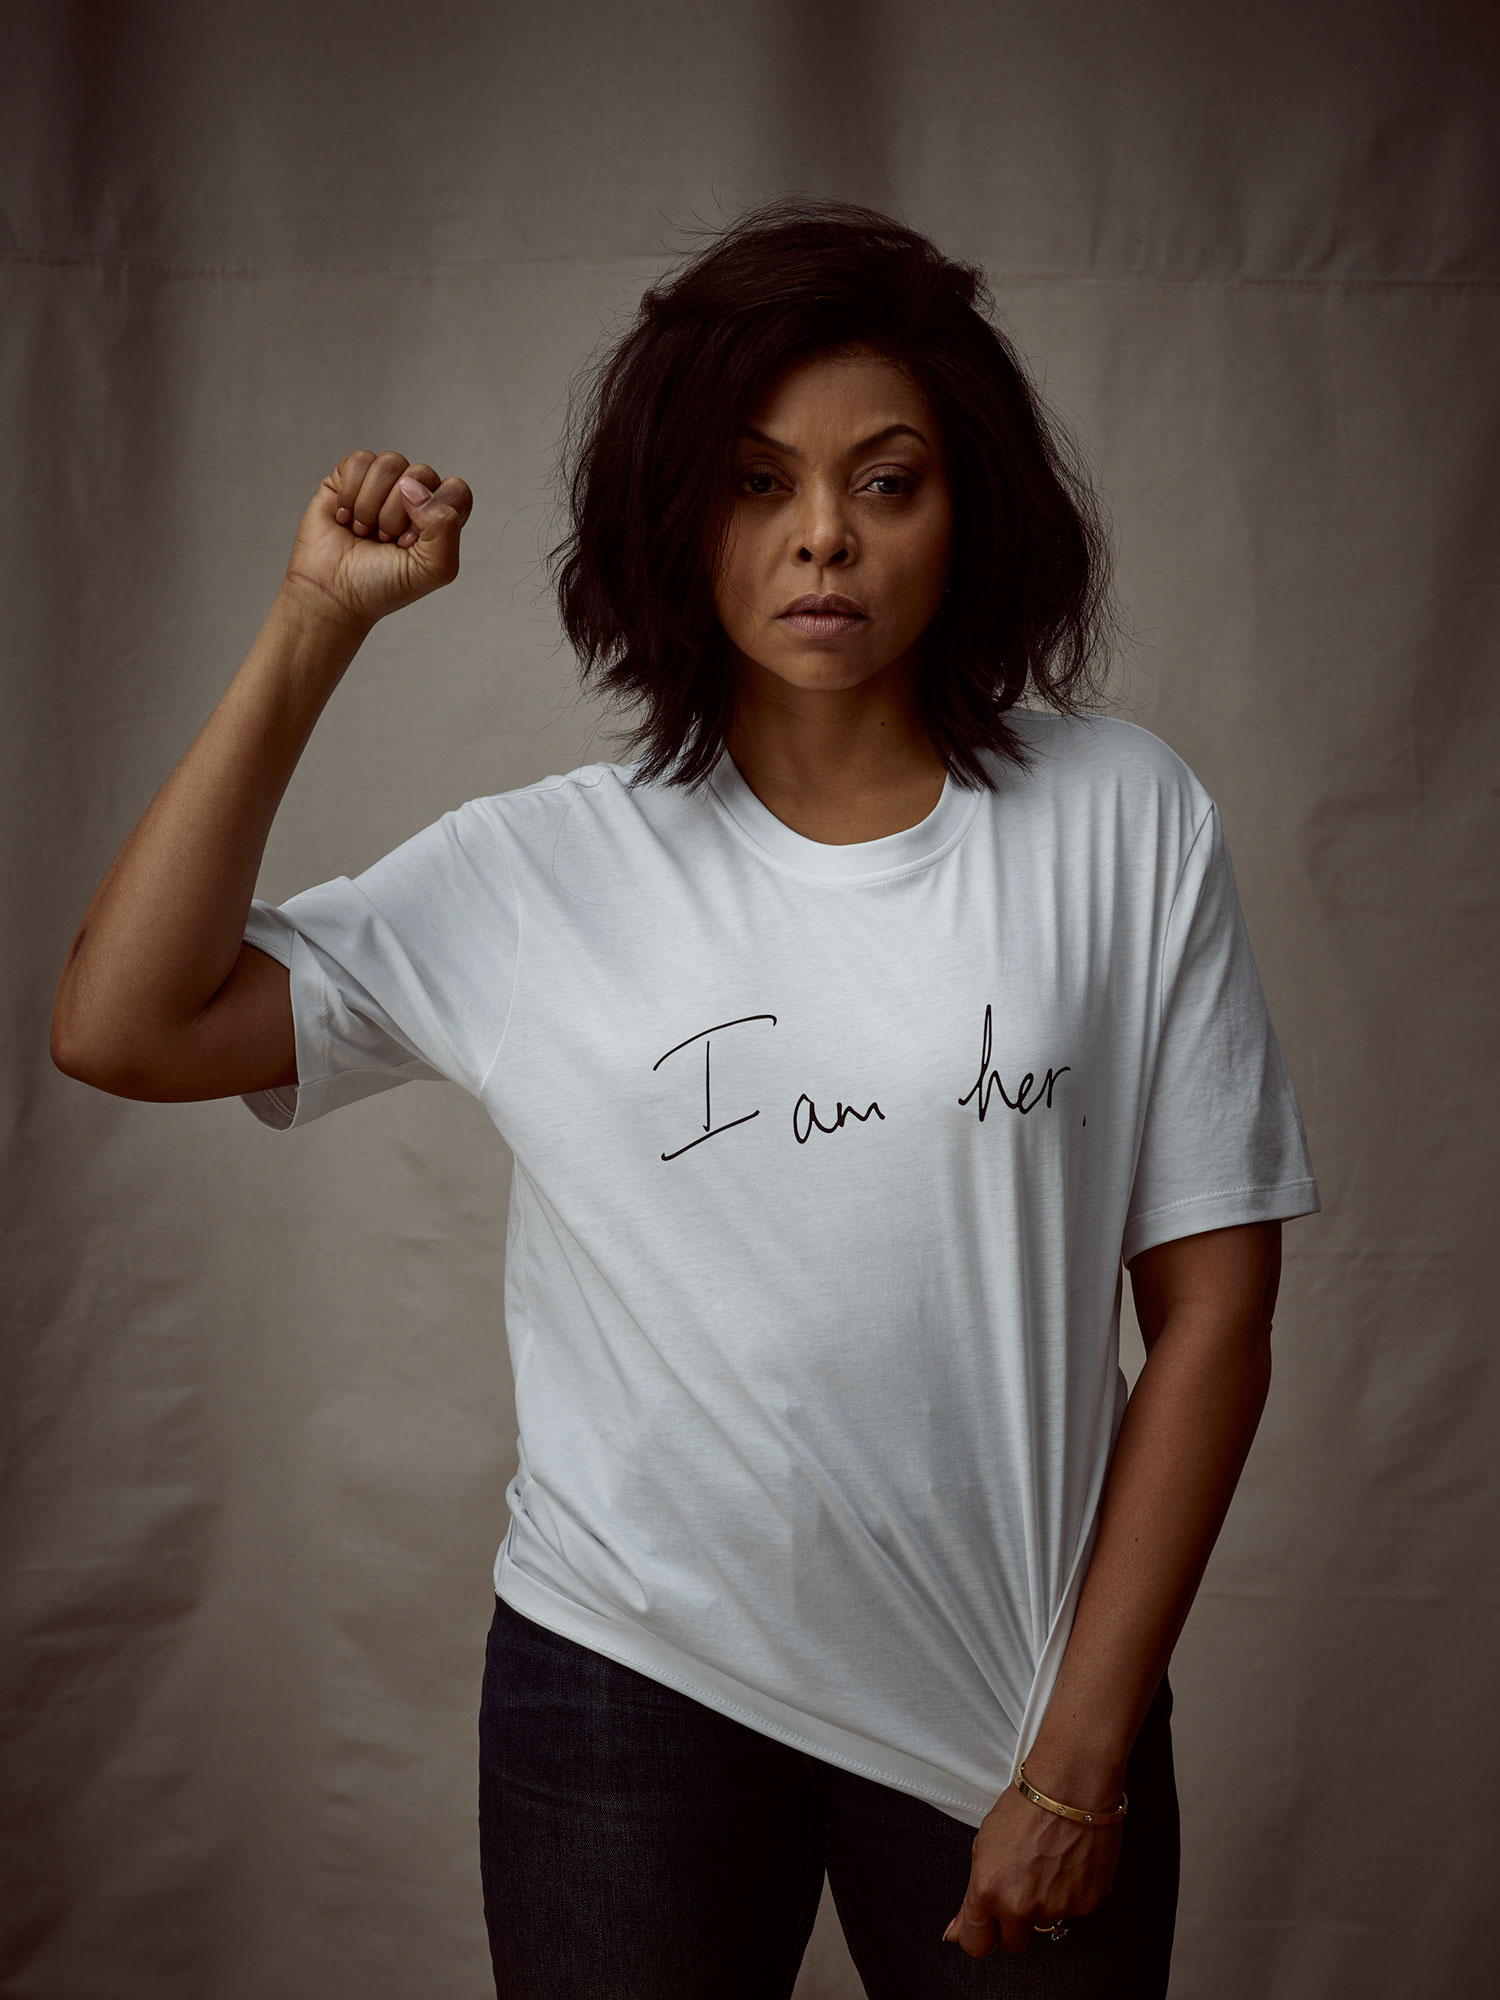 Taraji P Henson Net-a-Porter Is Here With a Star-Studded T-Shirt Collection for International Women's Day - The Empire actress made a statement in her Victoria Beckham tee. $220, net-a-porter.com